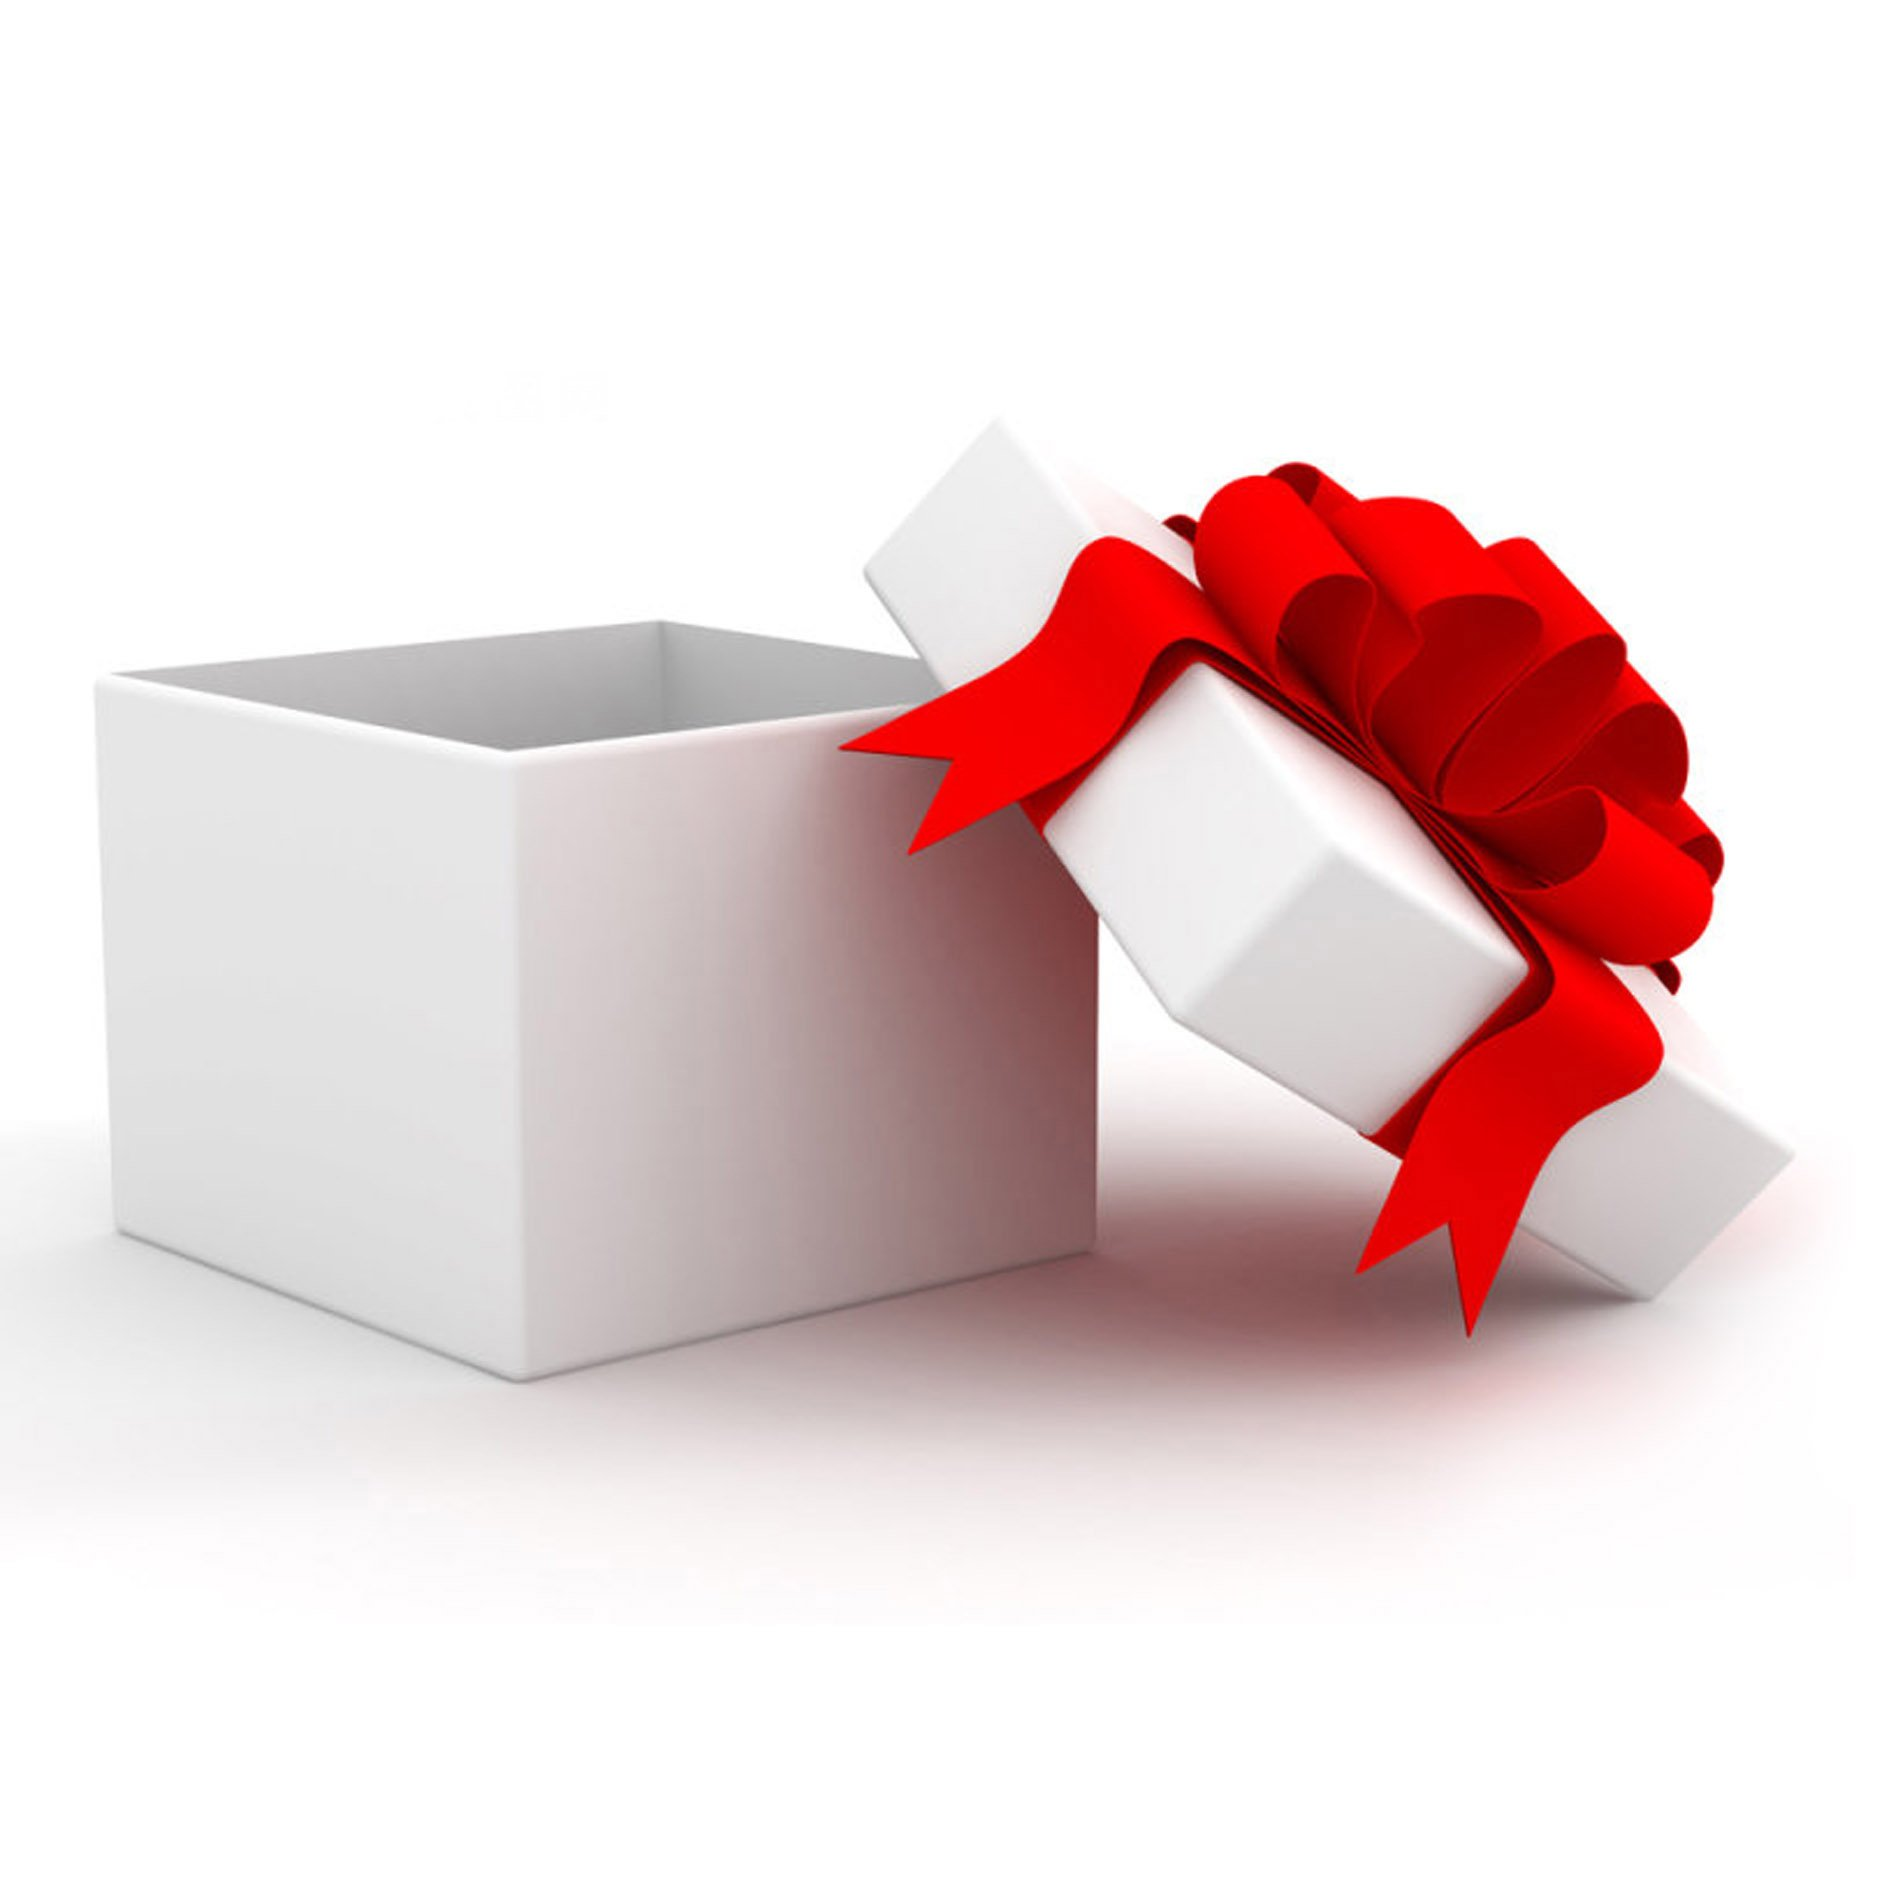 Candy caja de regalo embalaje cajas identificaci n del for Edible christmas gifts to make in advance